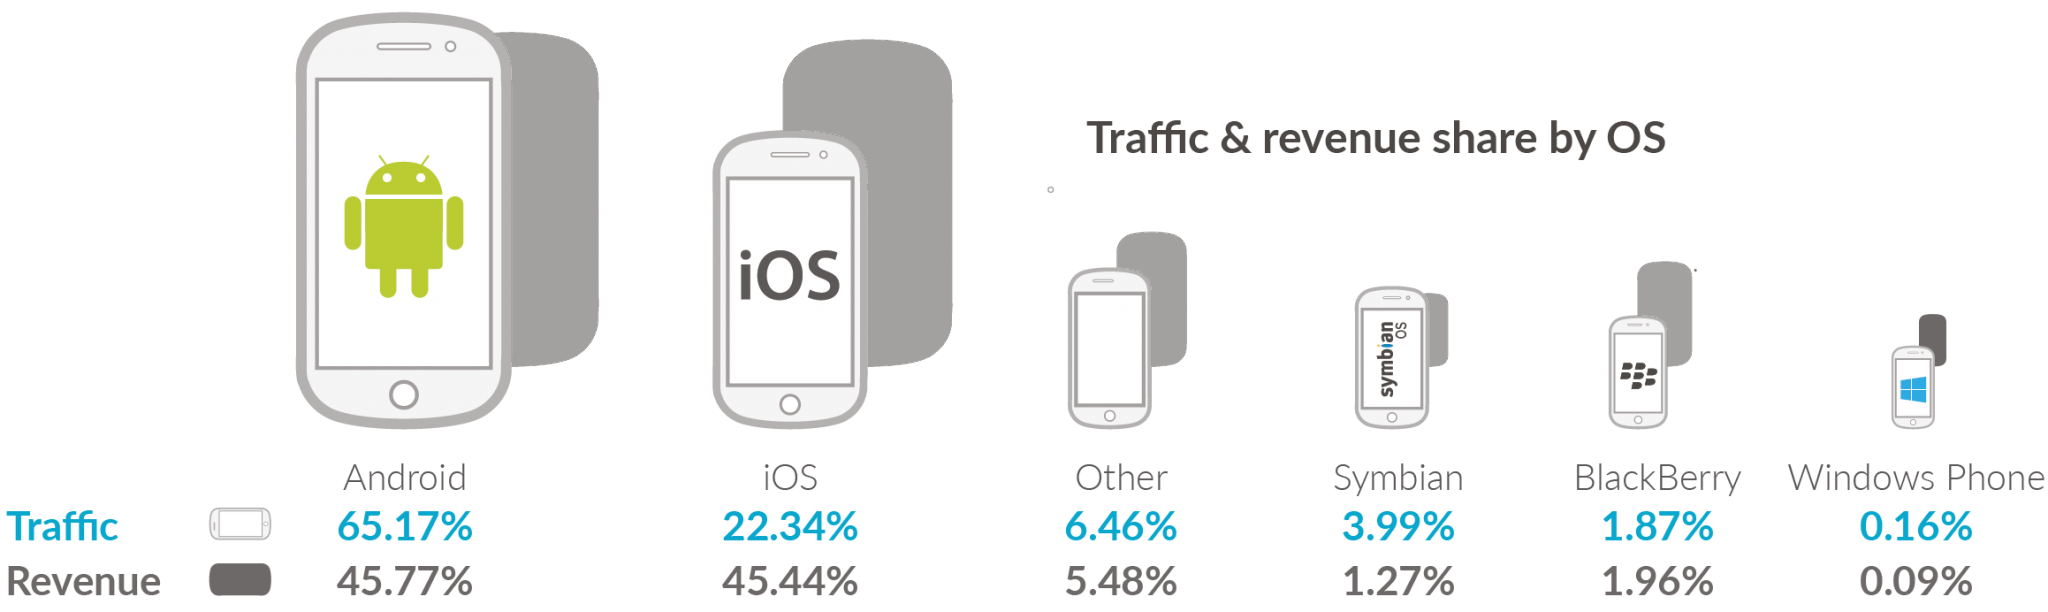 Mobile Ad Revenue on Android Overtakes iOS for the First Time